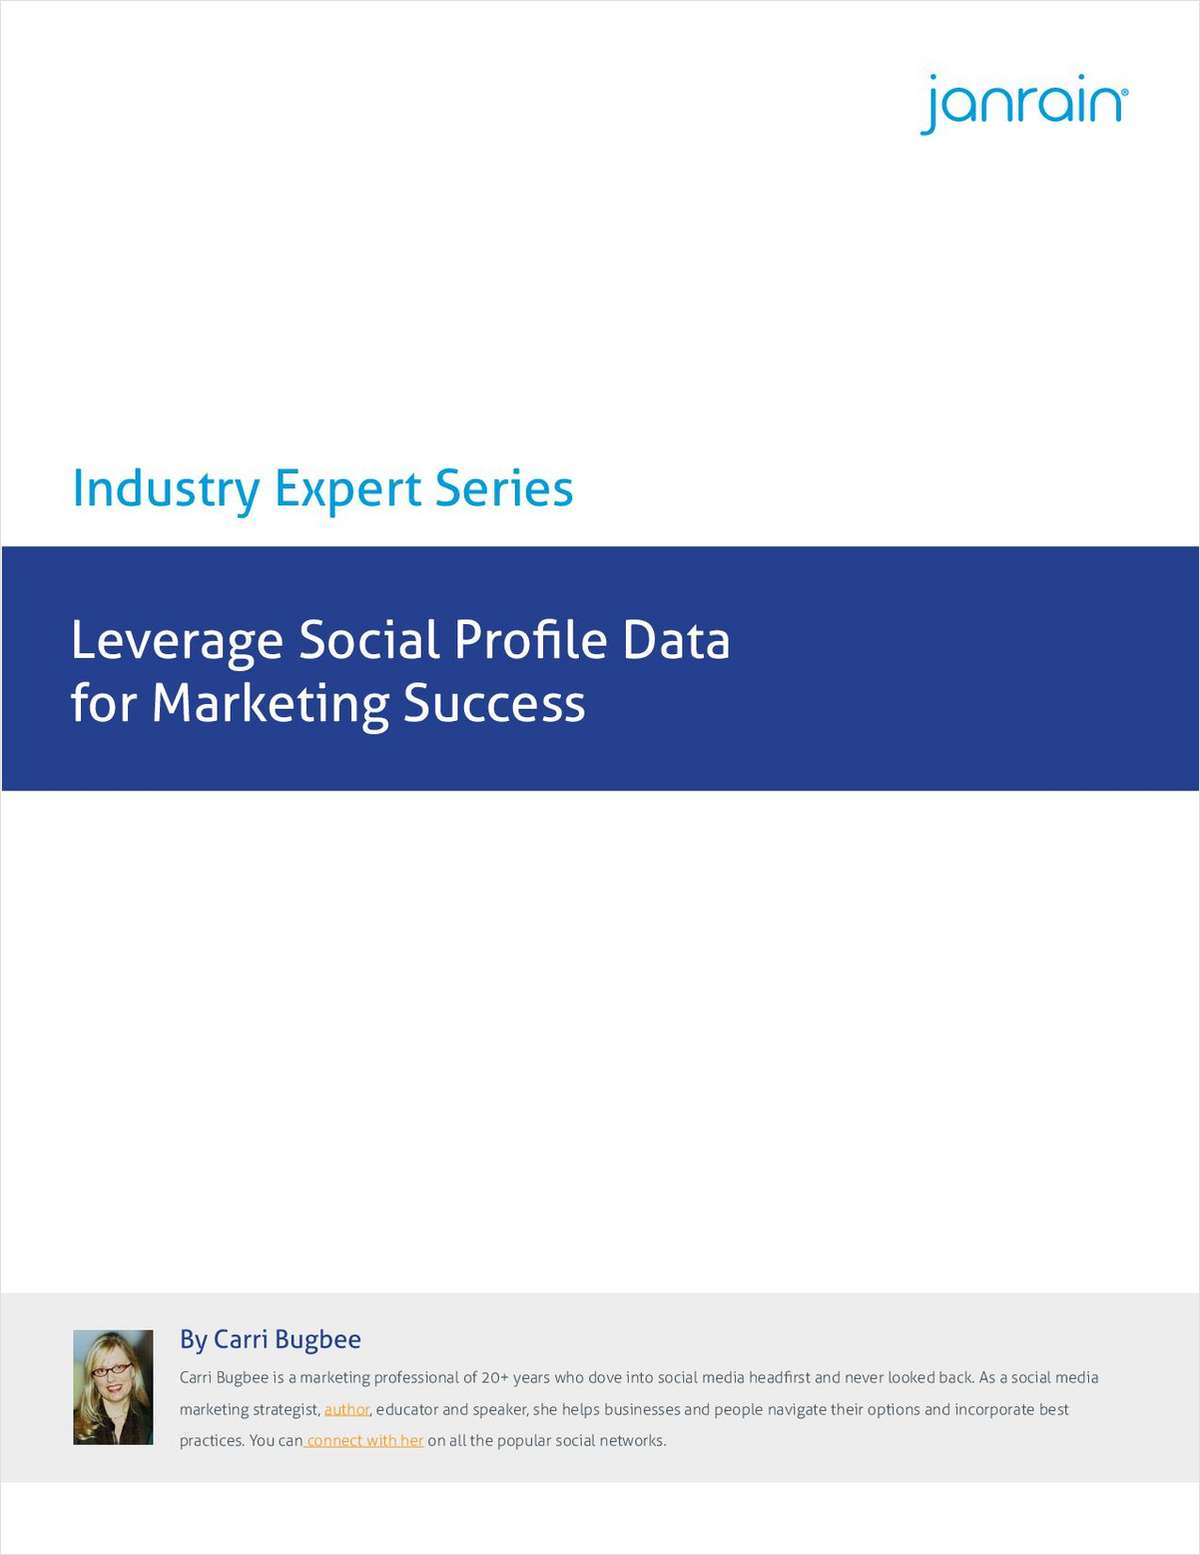 7 Ways to Leverage Social Profile Data on Your Site for Marketing Success